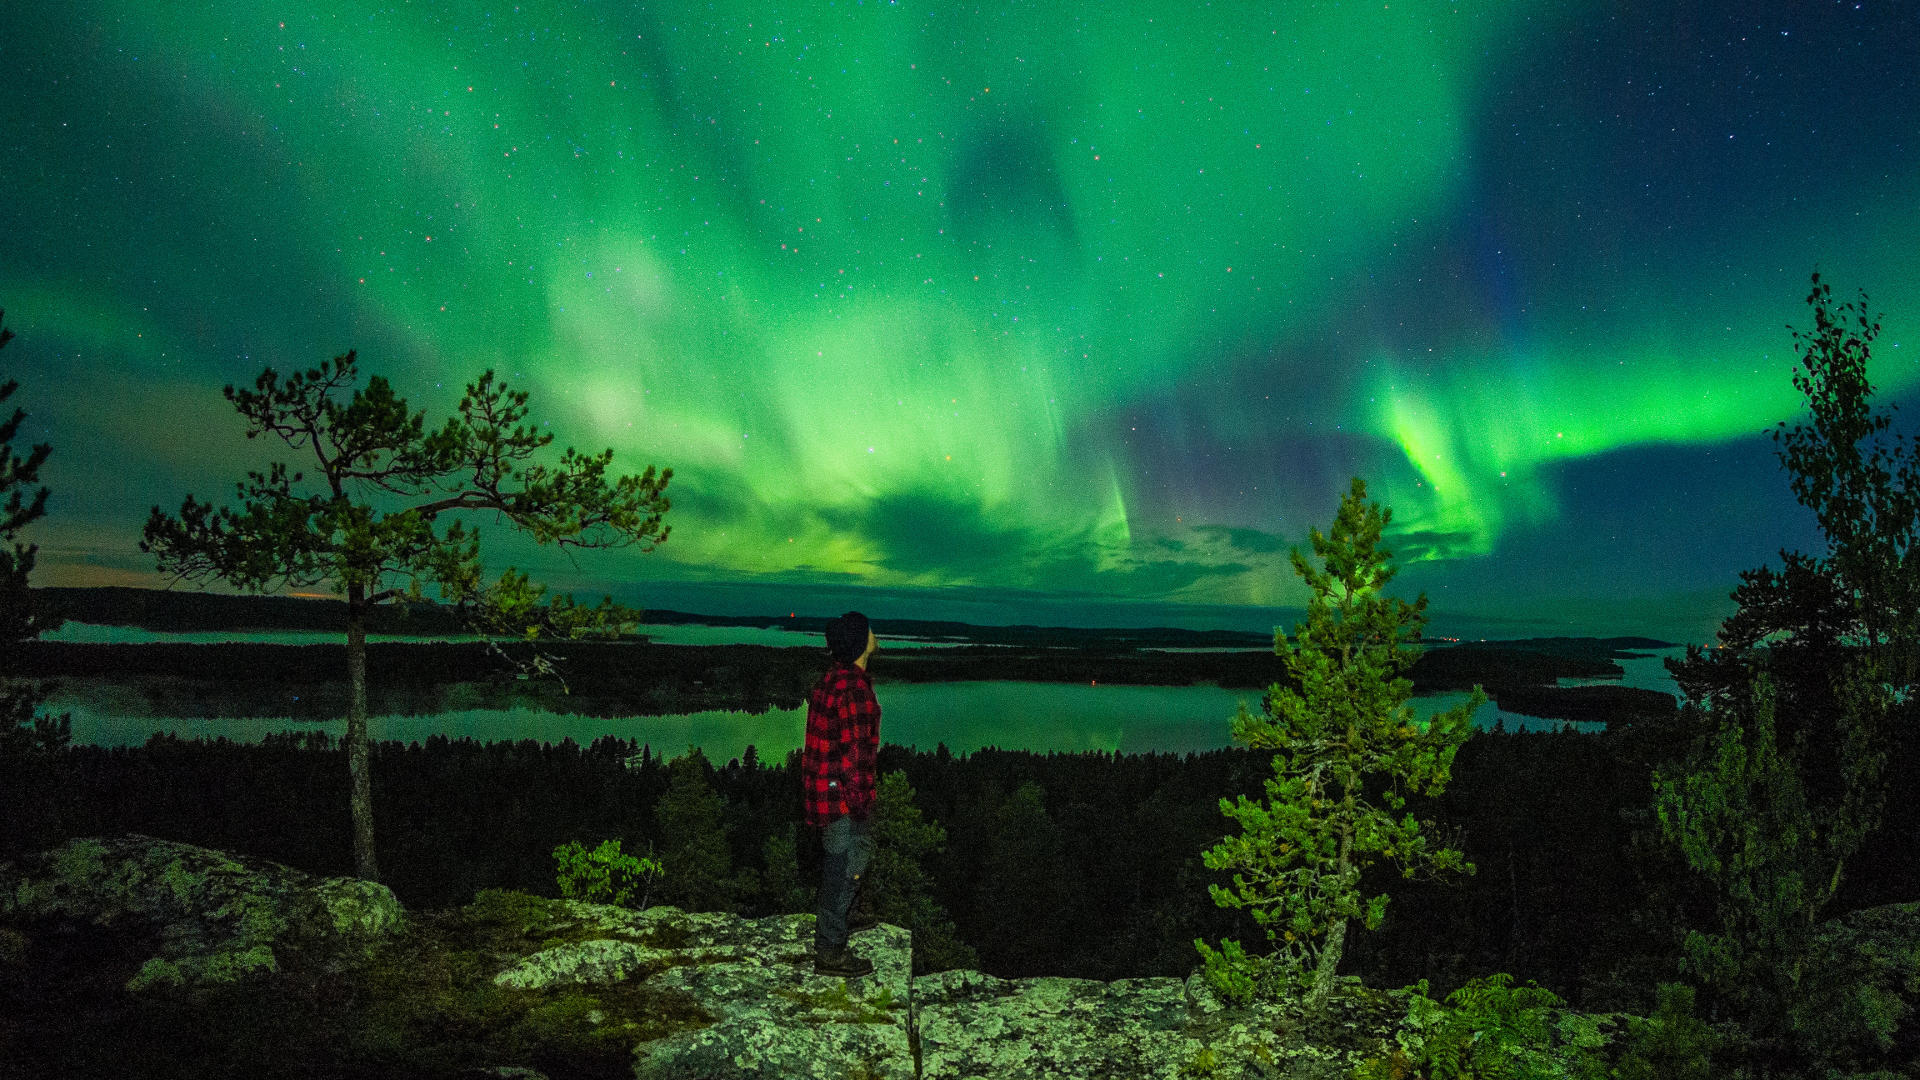 Country Fall Wallpaper Light Up Your Life With Aurora Borealis Film Lapland